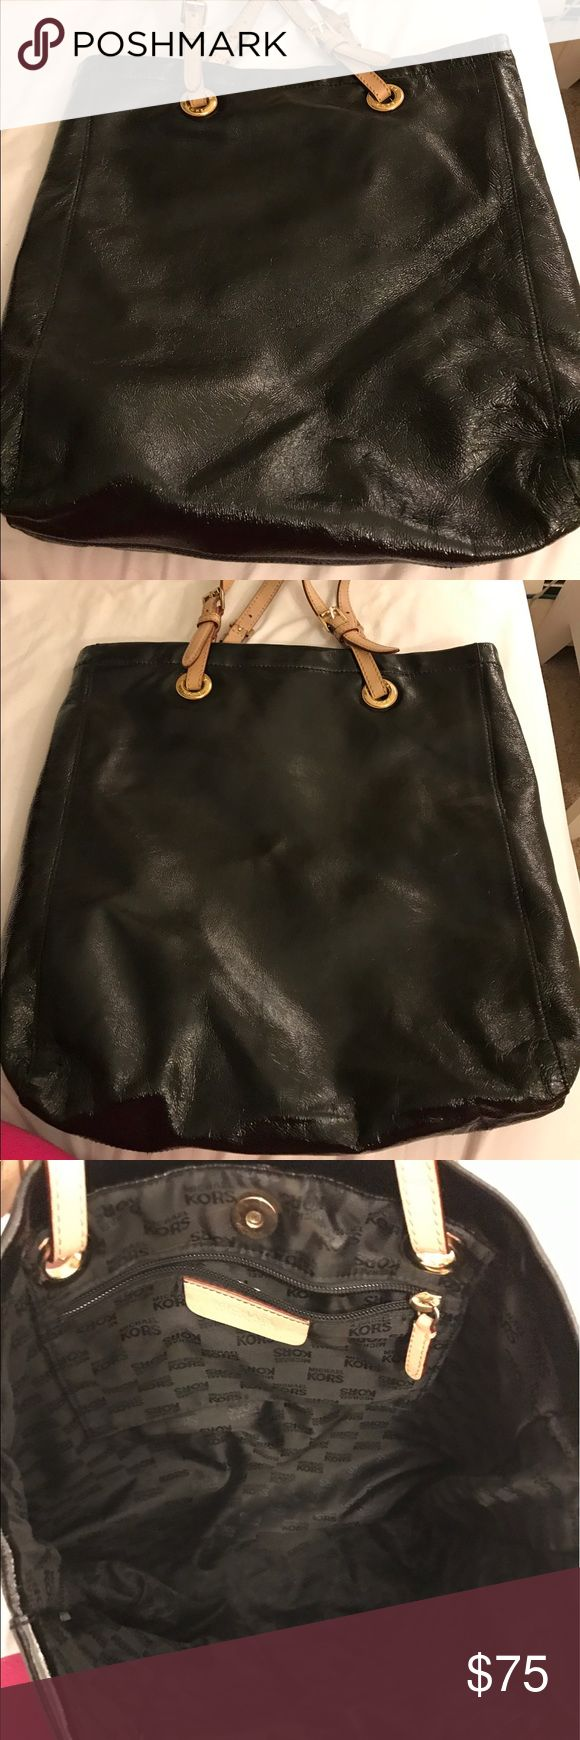 Michael Kors Jet Set Signature Tote Black glossy tote bag, used. In good condition. Straps show signs of wear. MK bangle fell off. Michael Kors Bags Totes